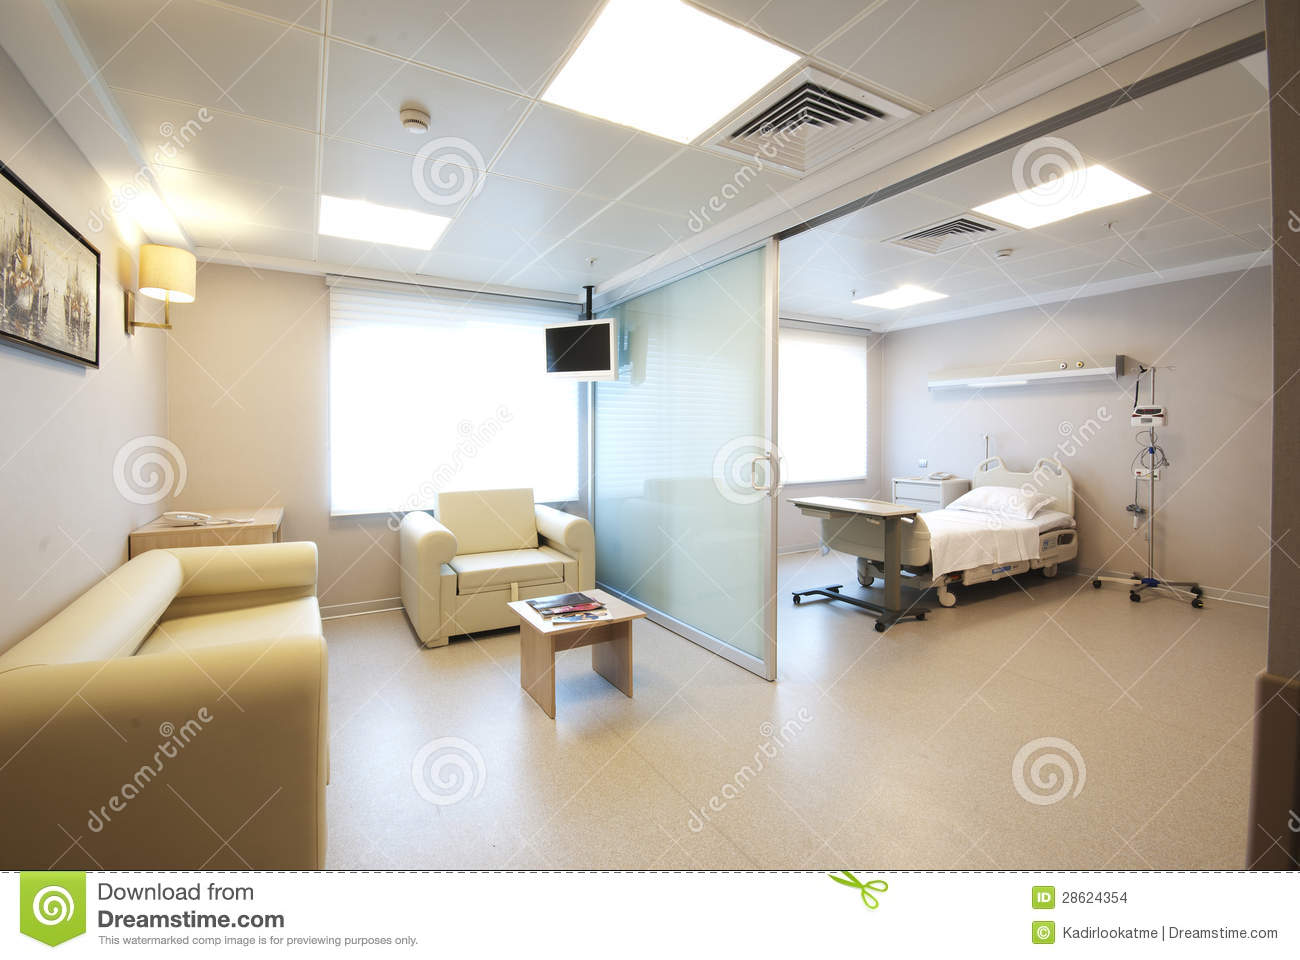 Private hospital room interior stock images image 28624354 for Room interior